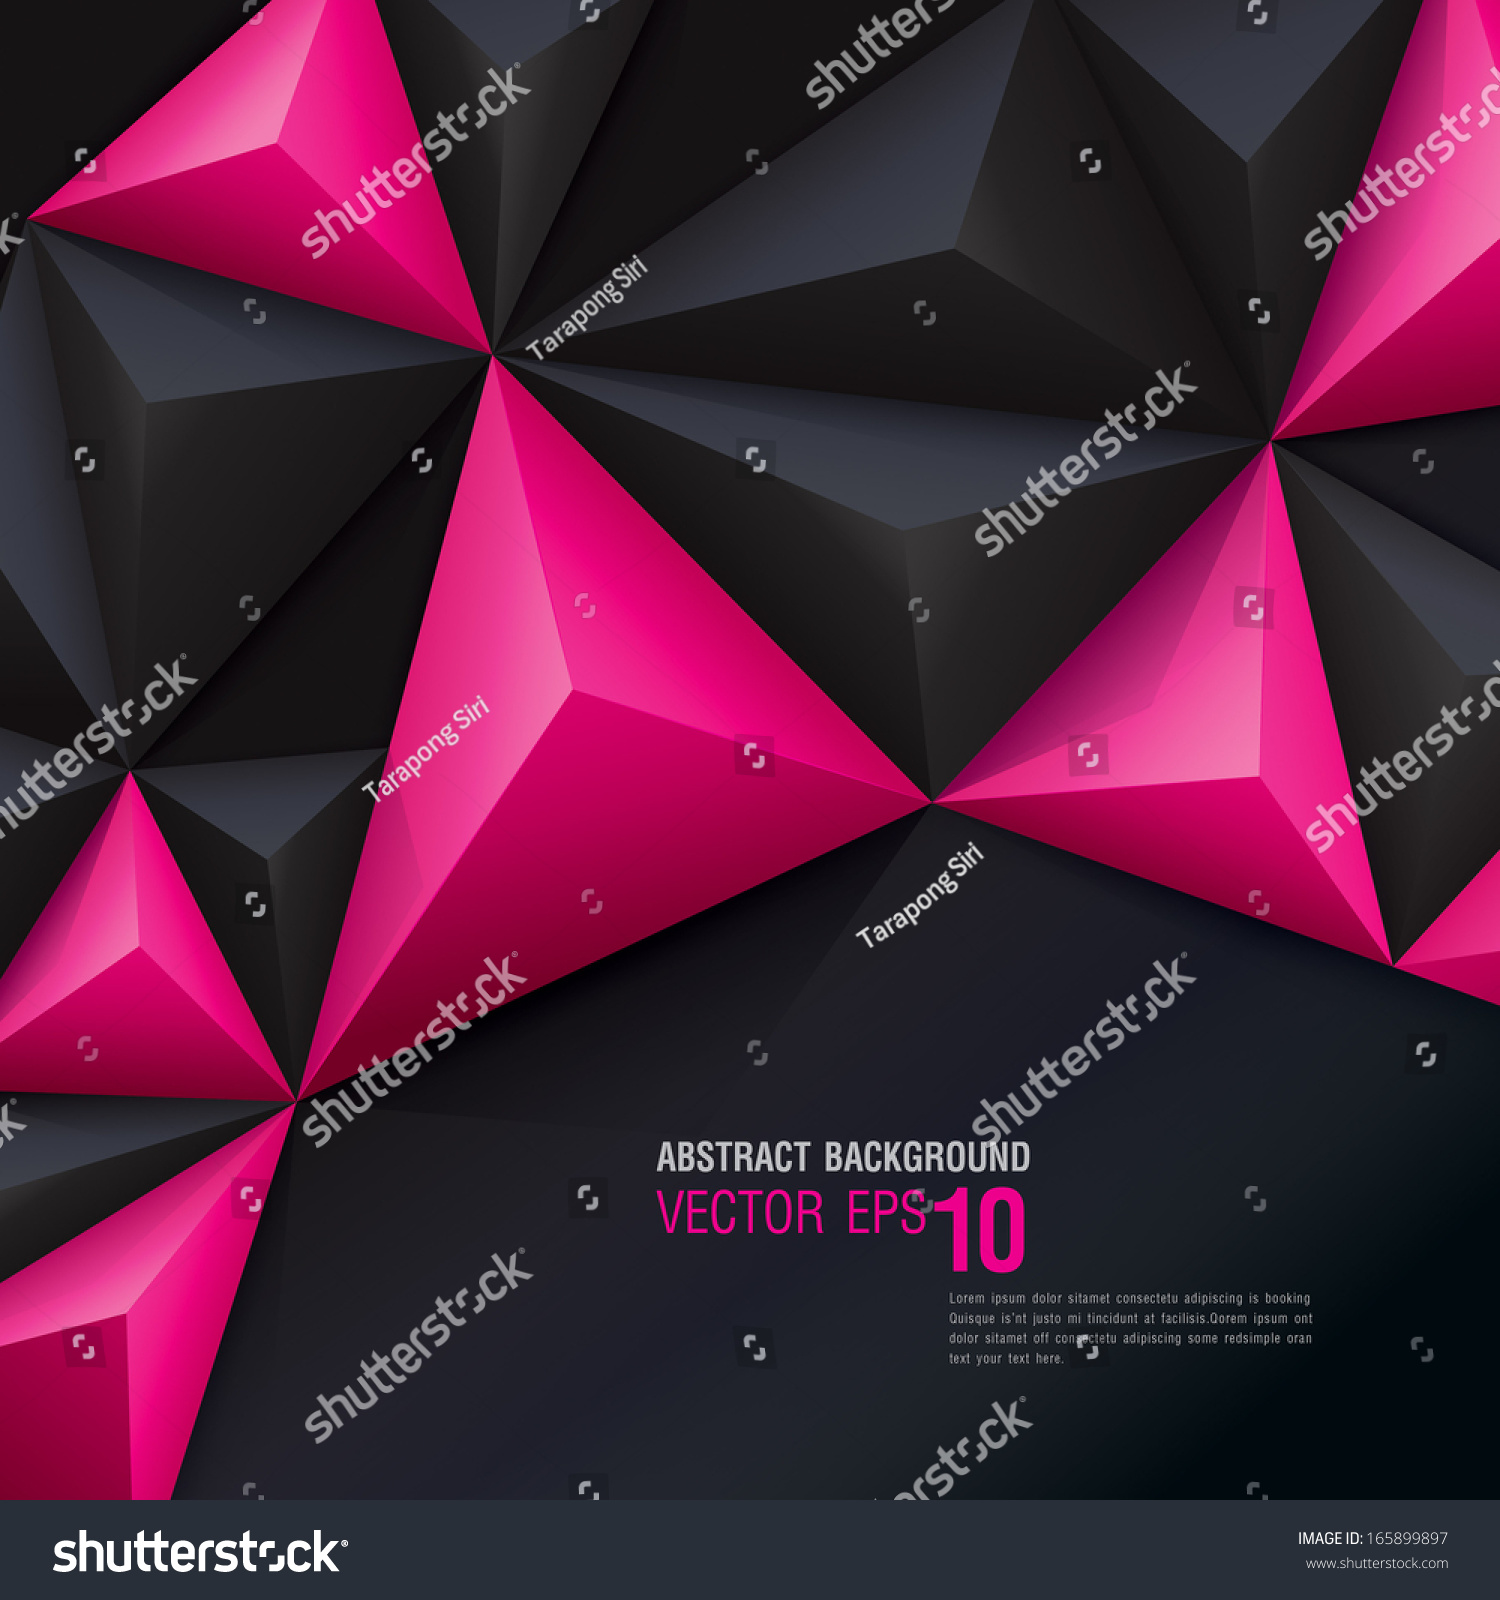 Wallpaper Black Pink: Pink Black Vector Geometric Background Can Stock Vector